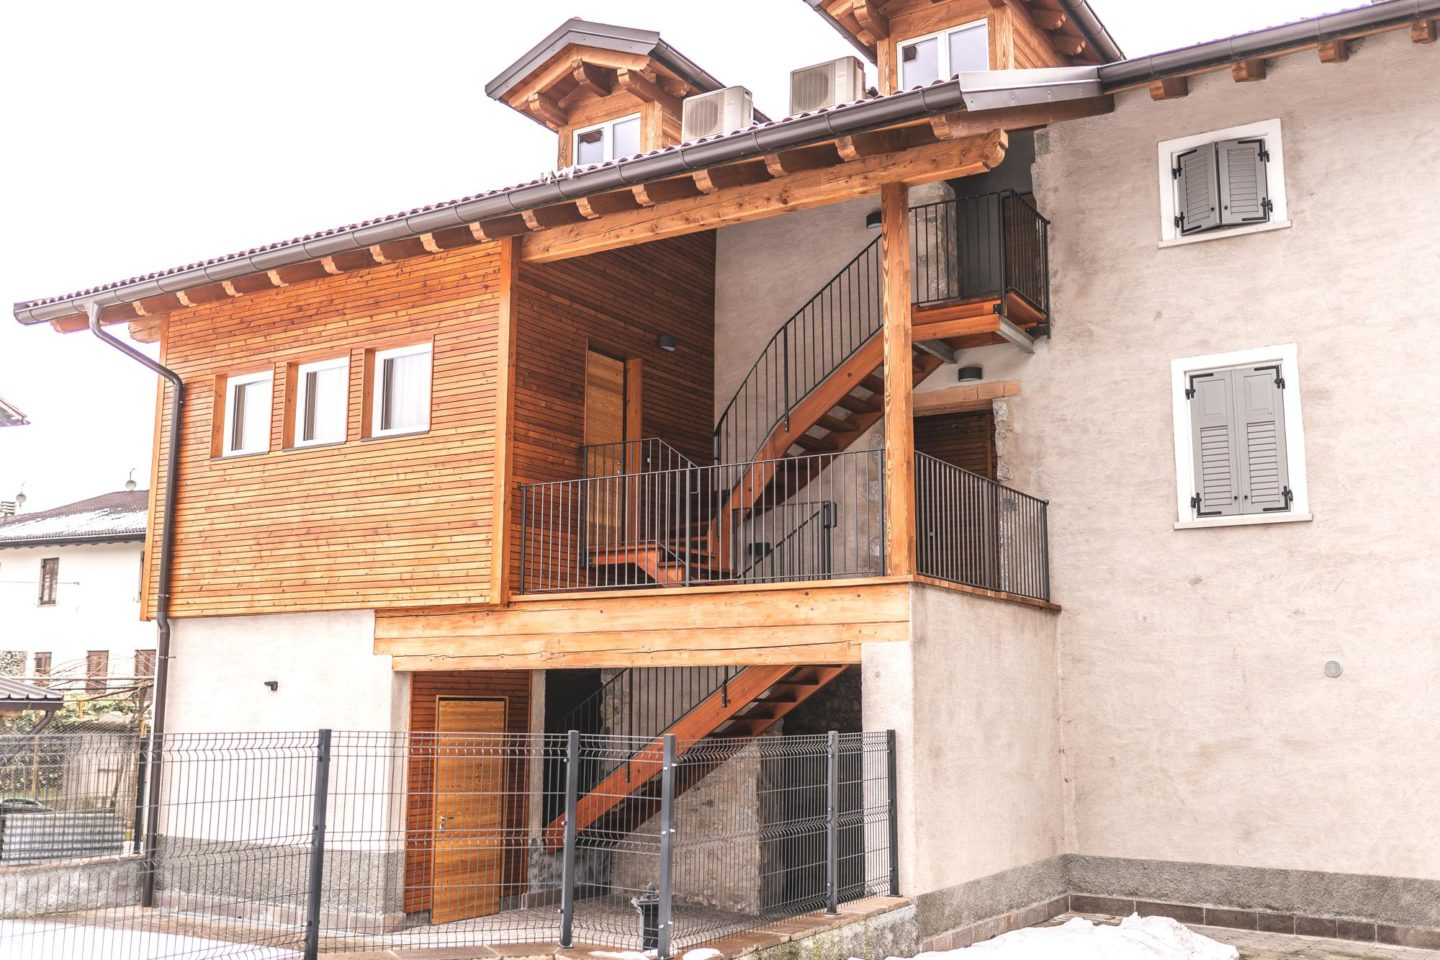 Holiday apartments in Trentino